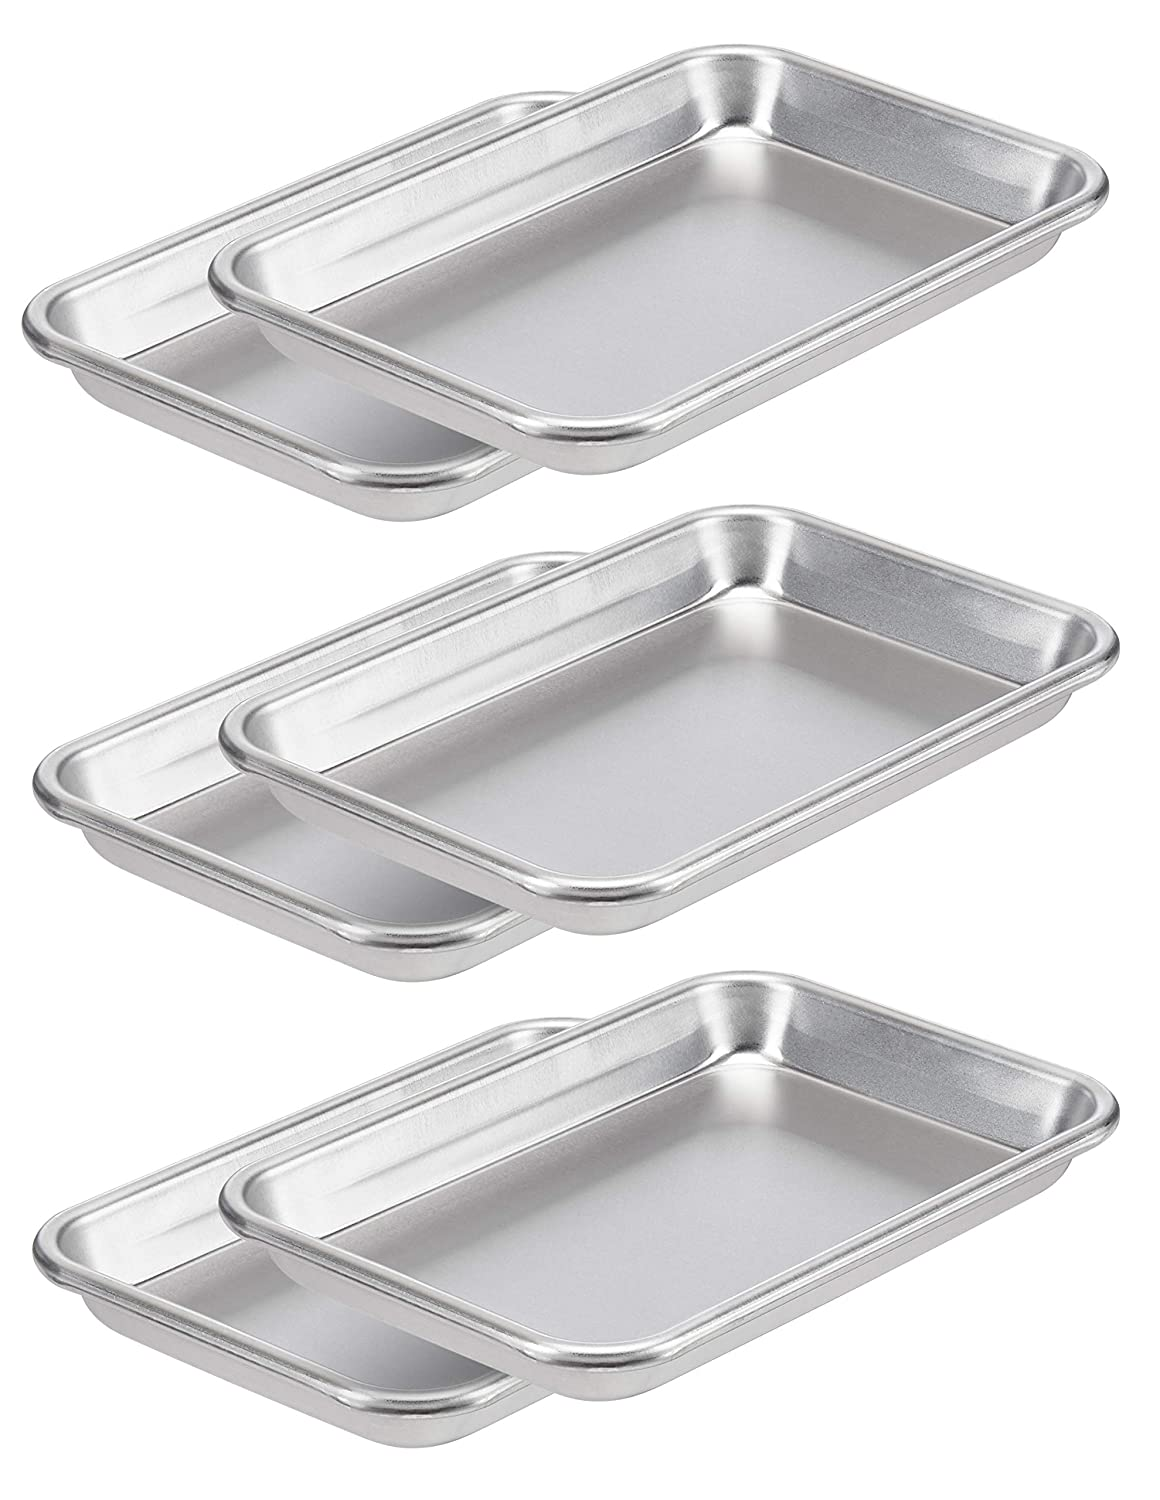 AmazonCommercial Aluminum Baking Inexpensive Sheet Pan 1 8 x In Ranking integrated 1st place 10 7